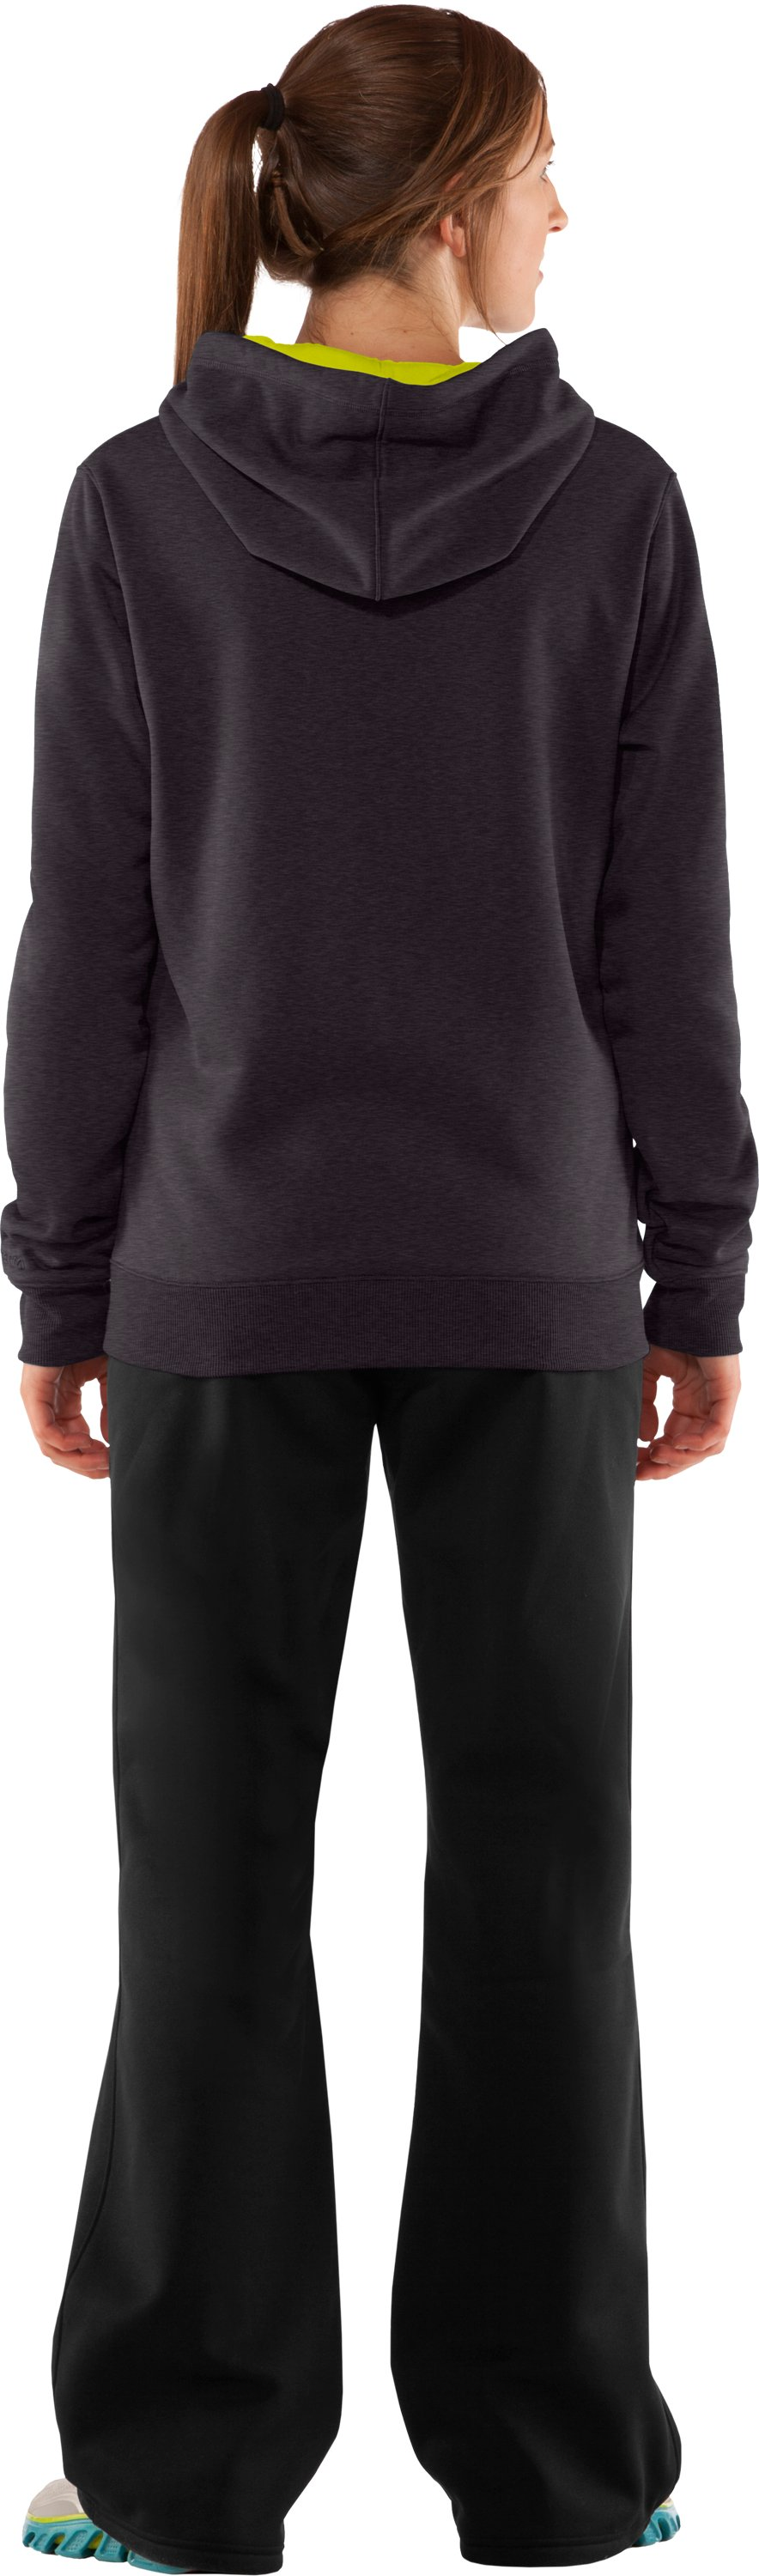 Women's Armour® Fleece Storm Big Logo Hoodie, Carbon Heather, Back